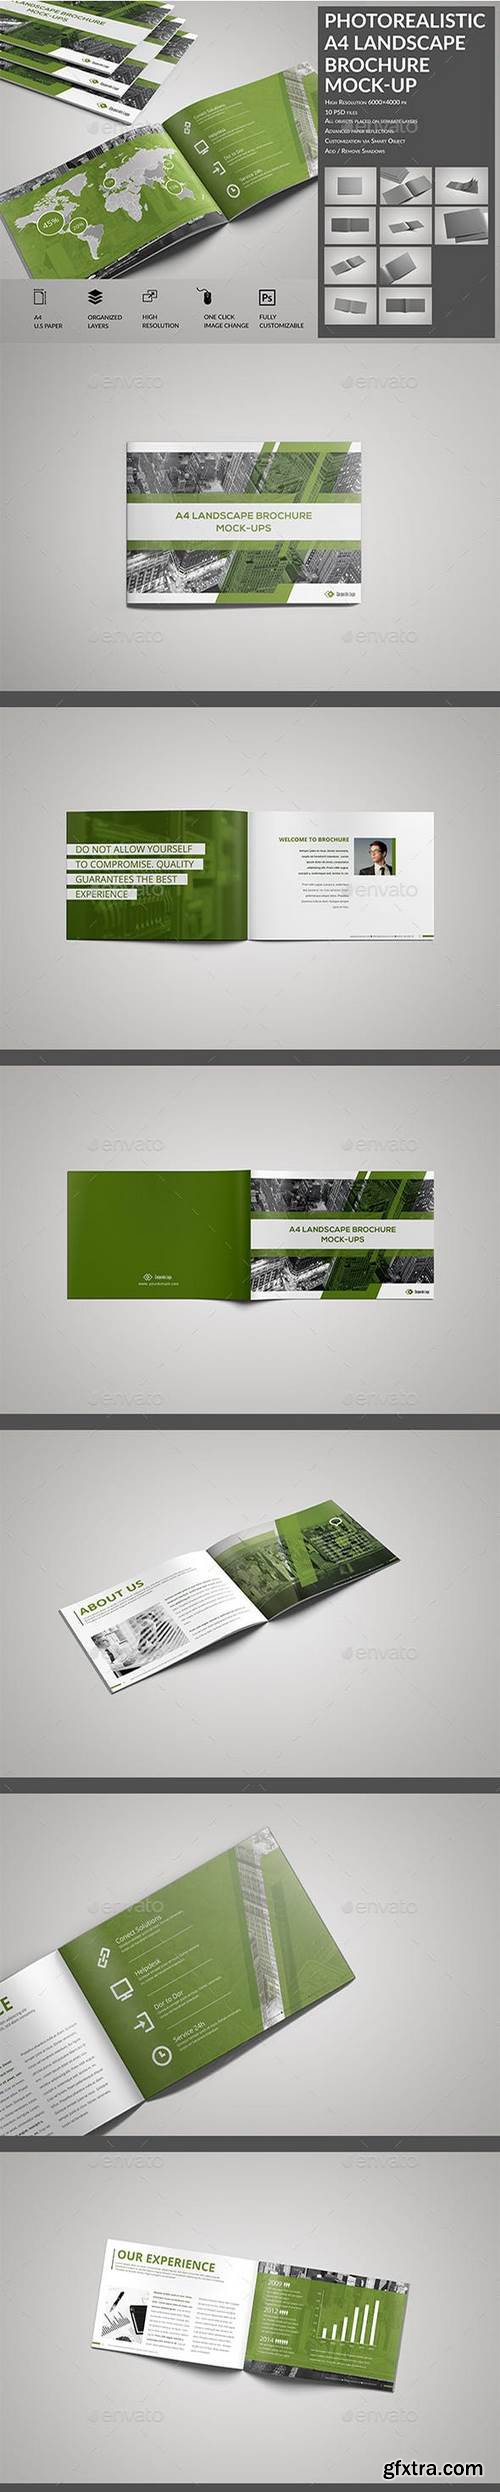 Graphicriver - Photorealistic A4 Landscape Brochure / Catalog Mock-Up 16501817